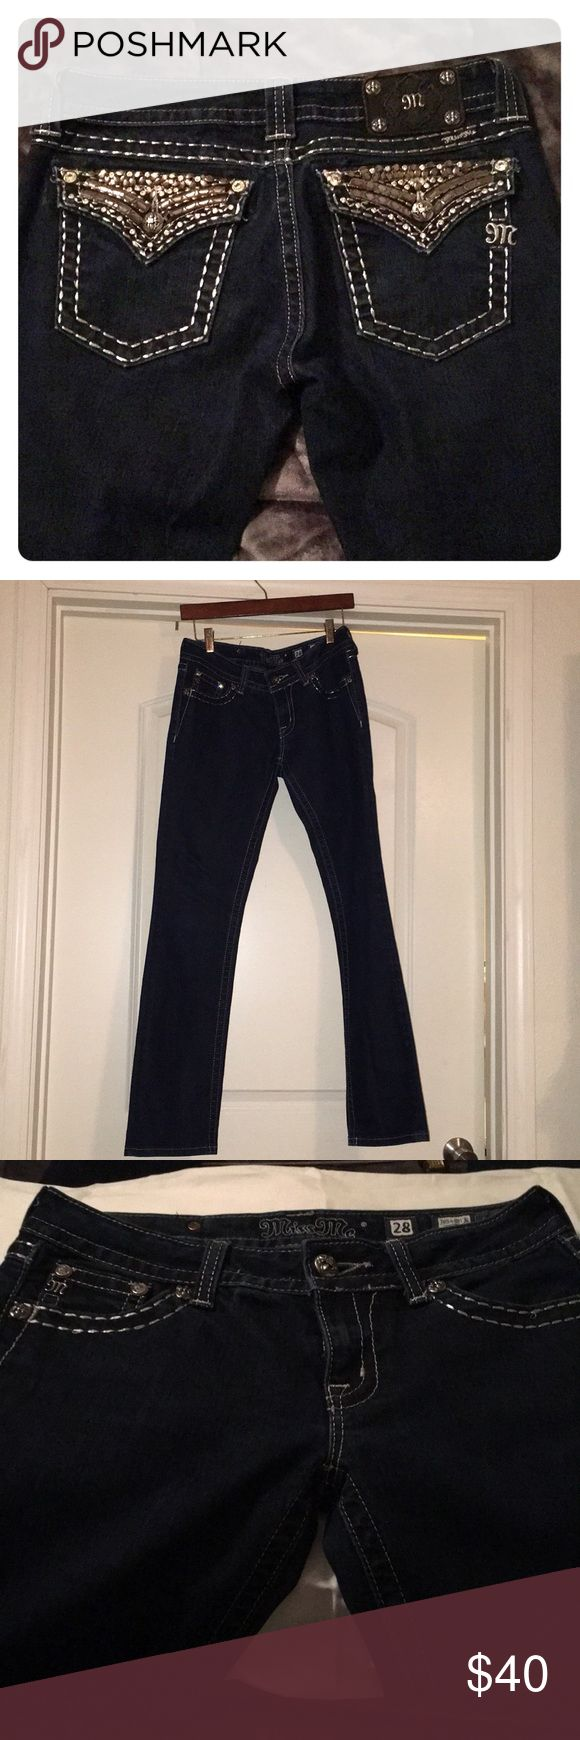 Miss Me Jeans Women's size size 28 jeans. With metallic rhinestone design on pocket as seen in photos. These are a dark indigo color and haven't been worn but a handful of times. They are a skinny straight leg. One of the metal rivets on the left pocket has a slight bend, which is depicted. Miss Me Jeans